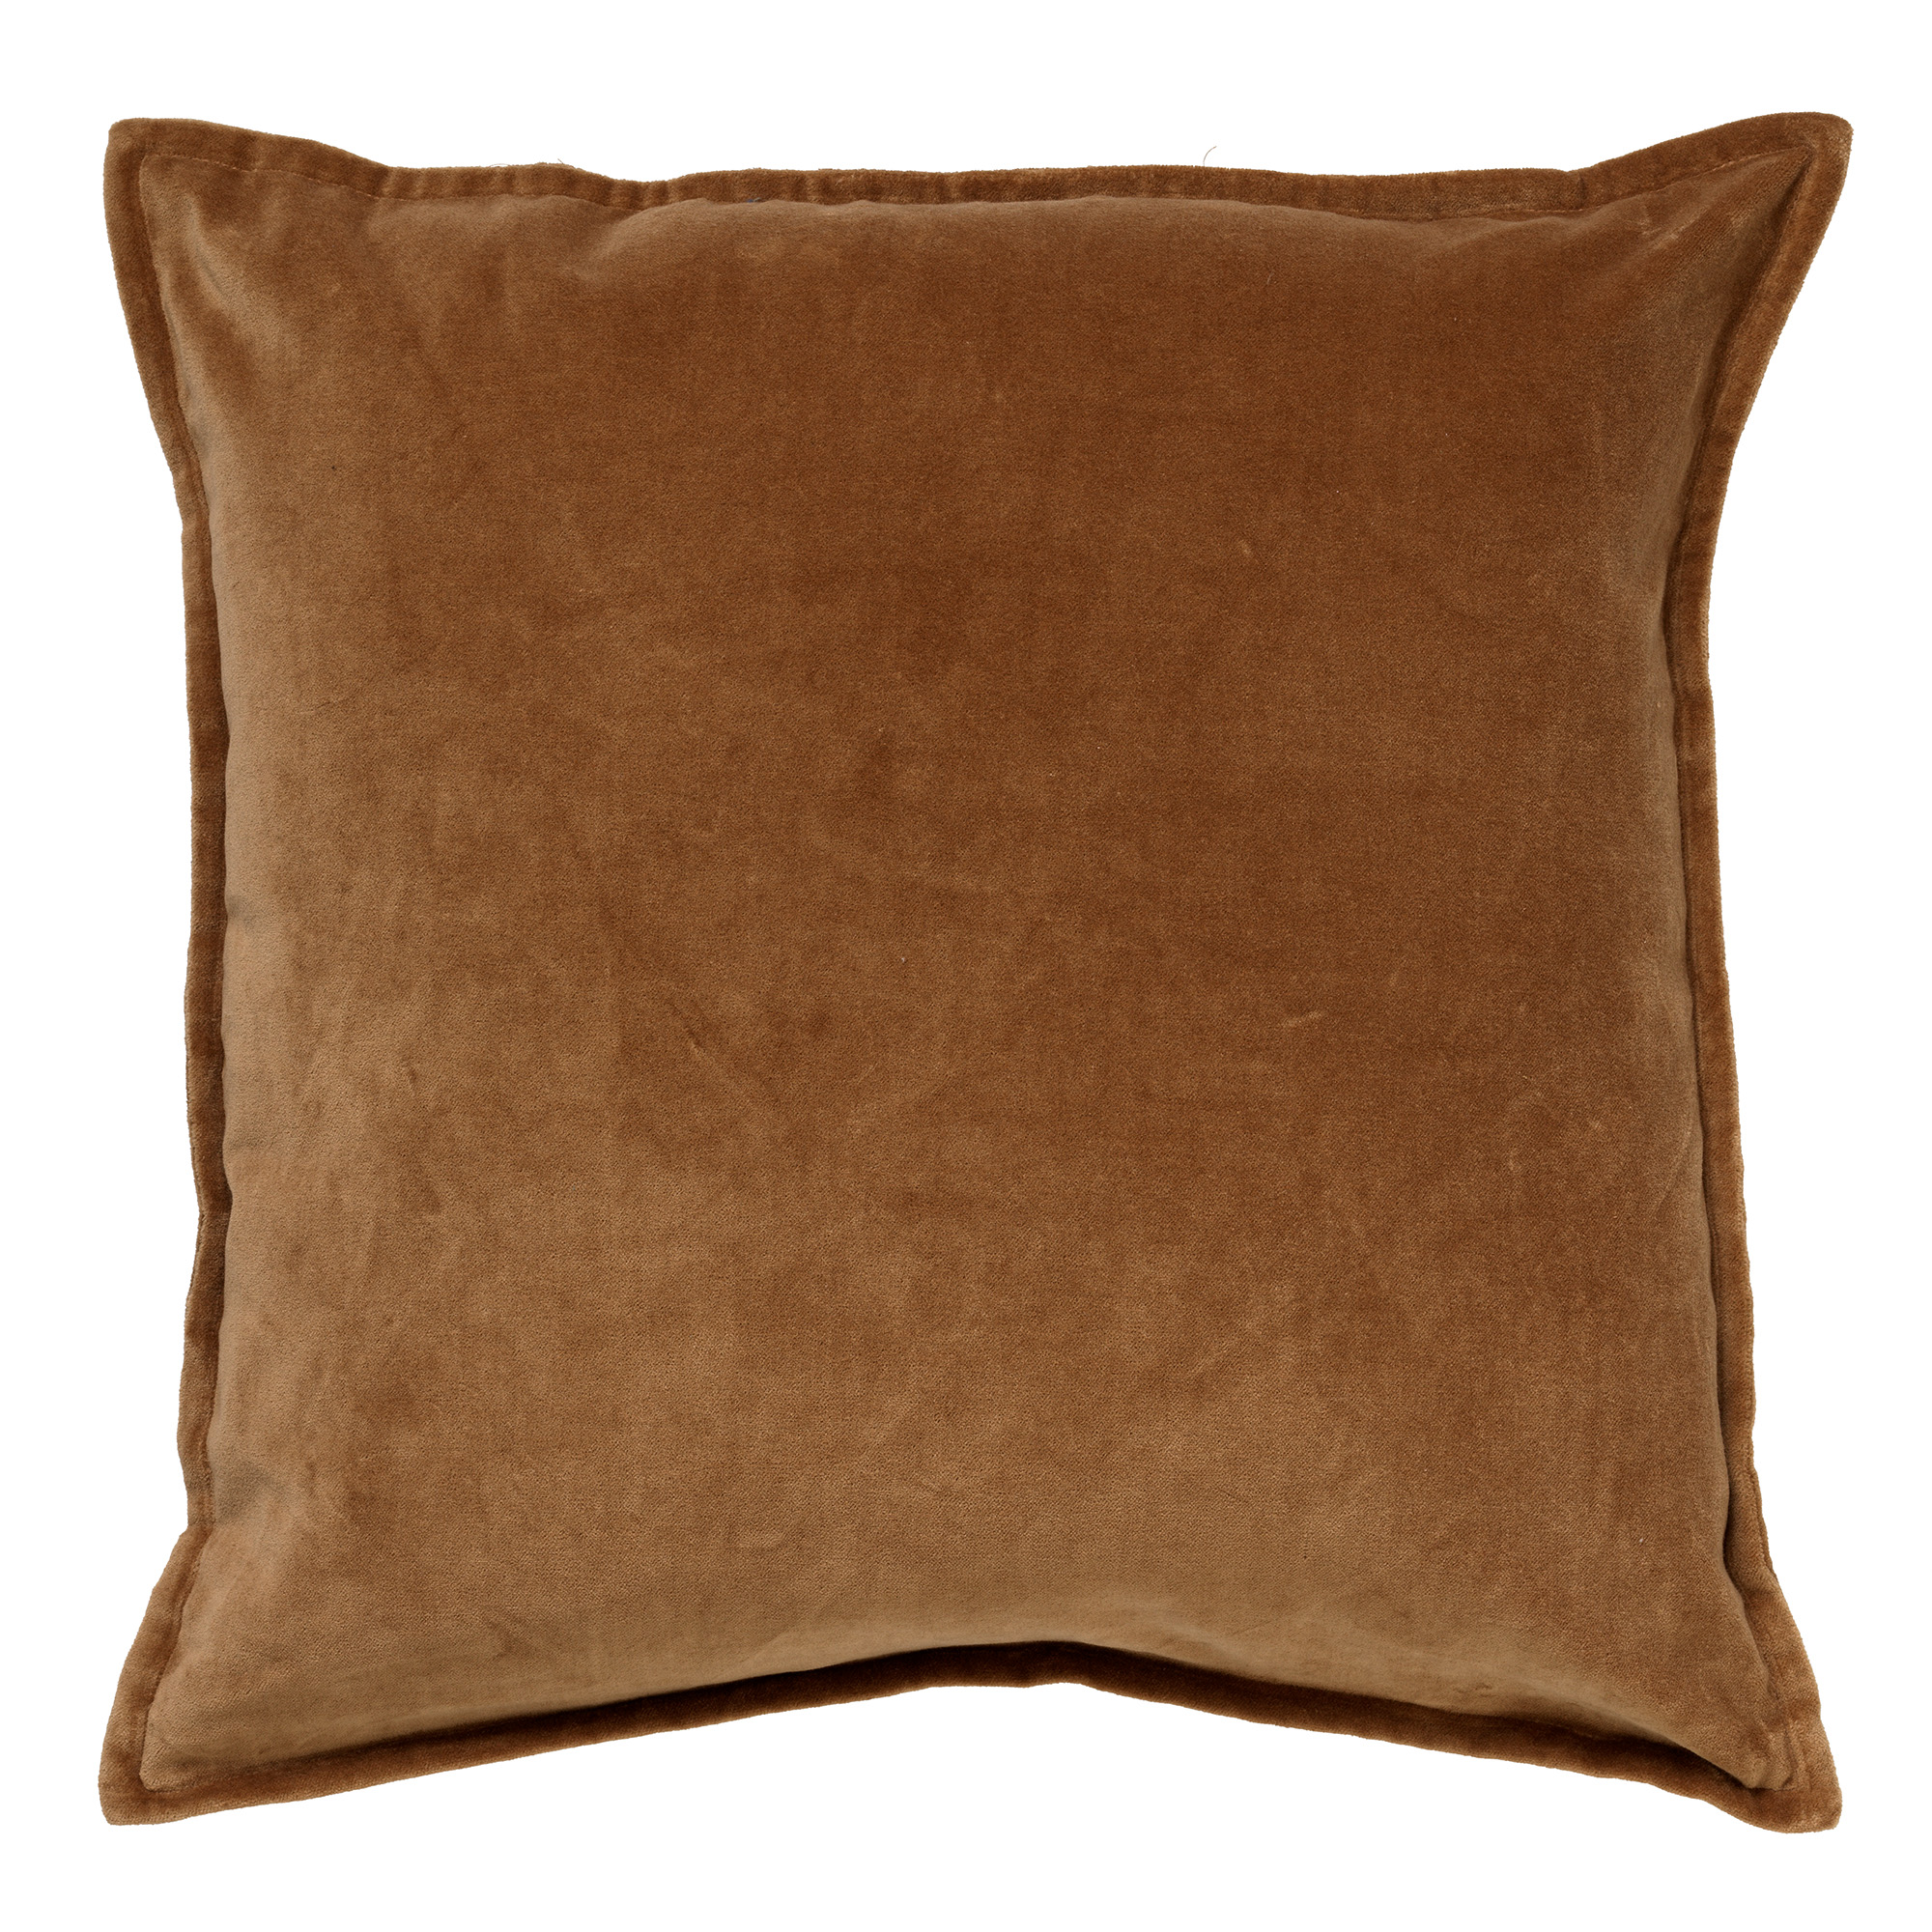 CAITH - Sierkussen velvet Tobacco Brown 50x50 cm